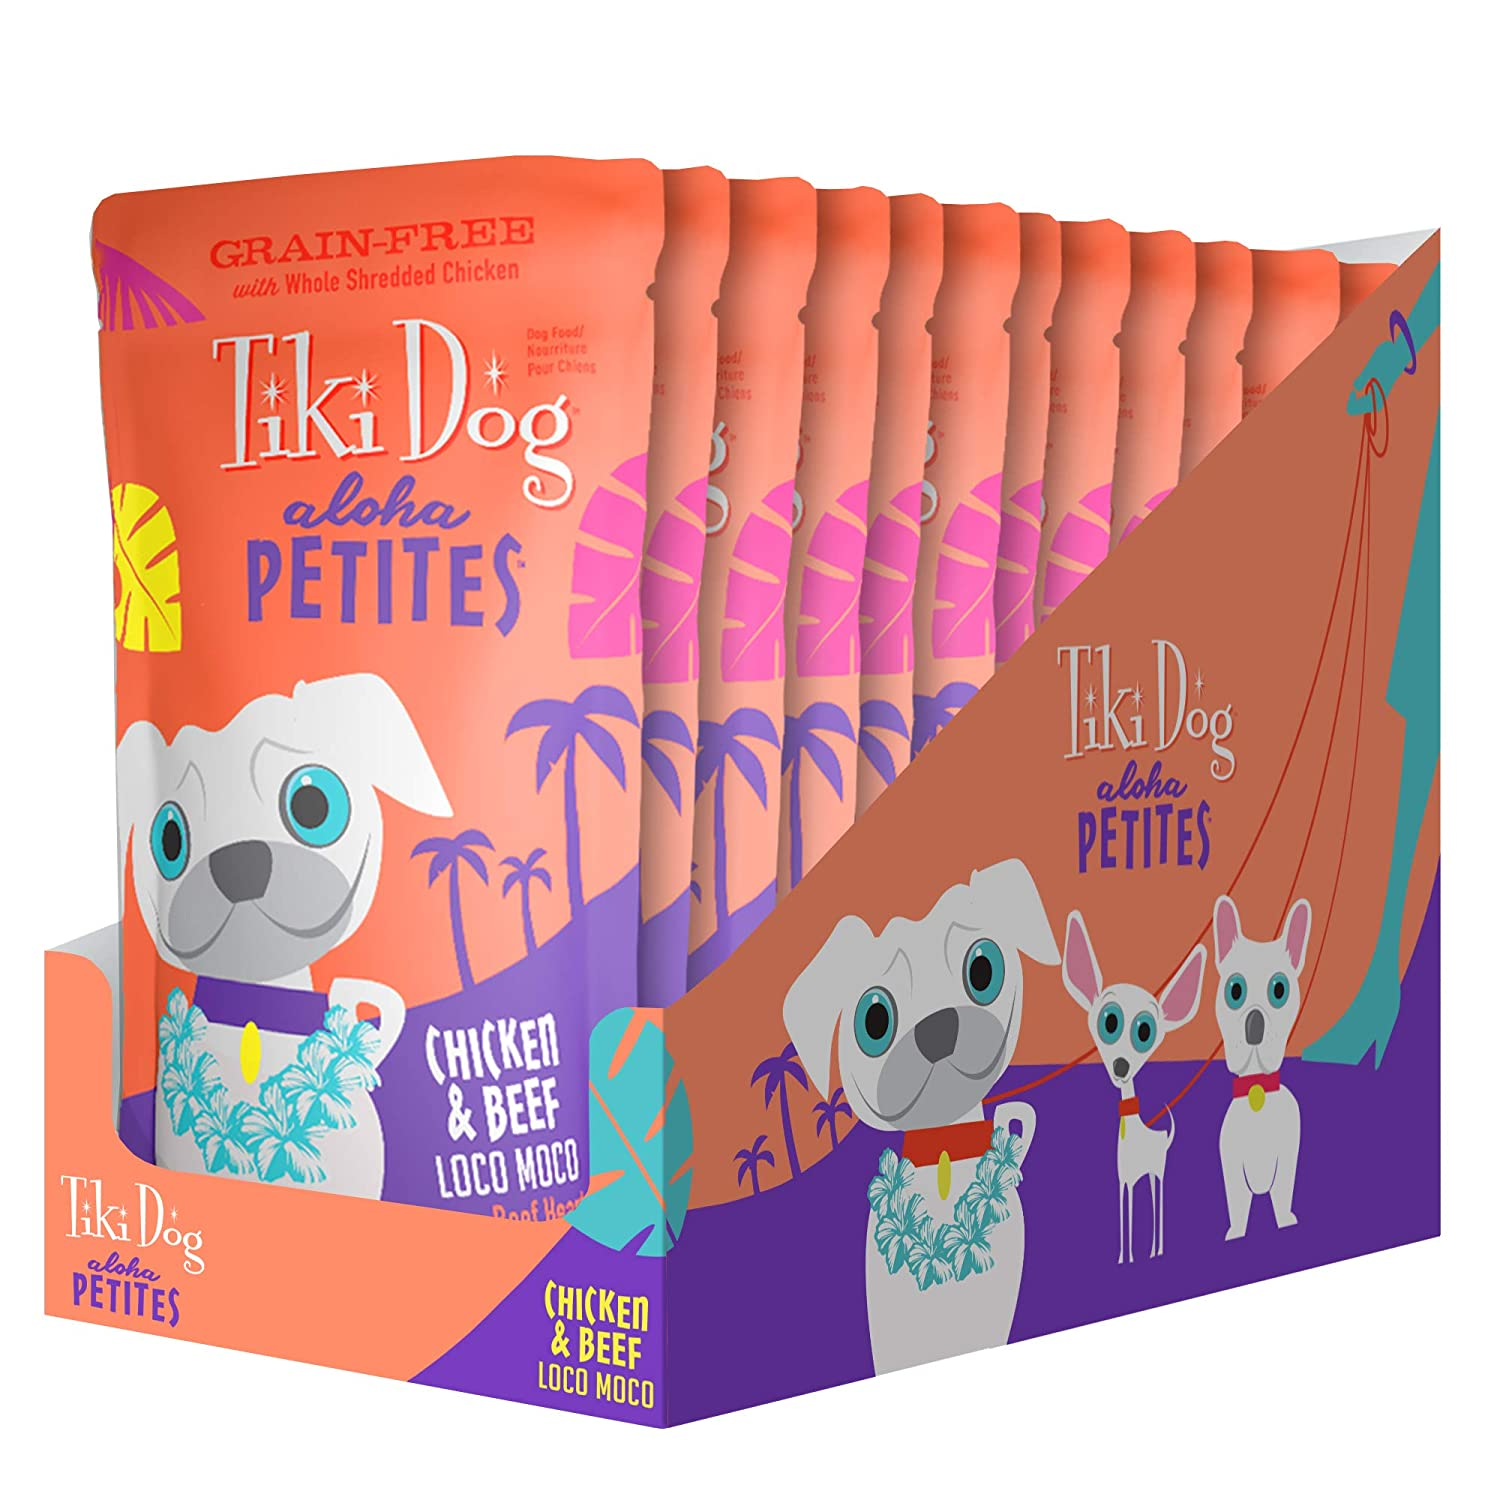 Tiki Dog Aloha Petites Gluten & Grain Free Wet Food in a Pouch for Adult Dogs with Shredded Meat & Superfoods